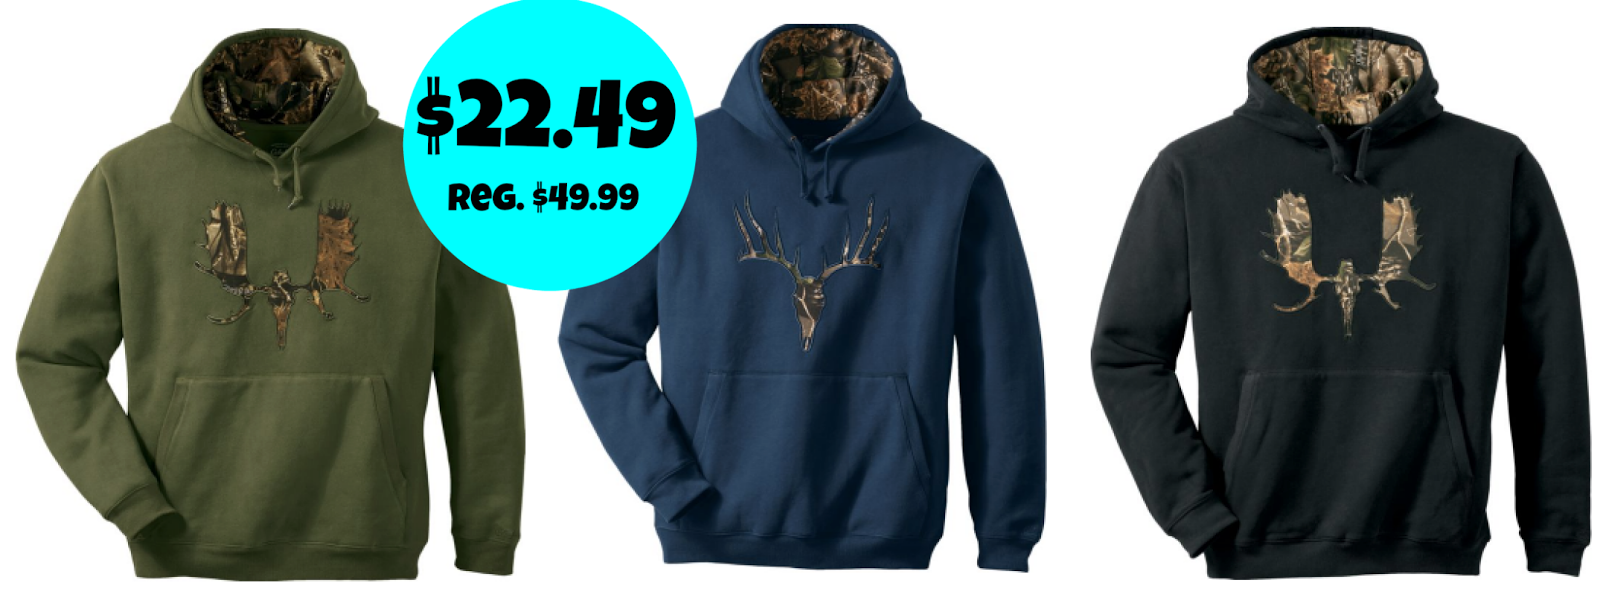 http://www.thebinderladies.com/2014/11/cabelas-mens-signature-big-game-hoodies.html